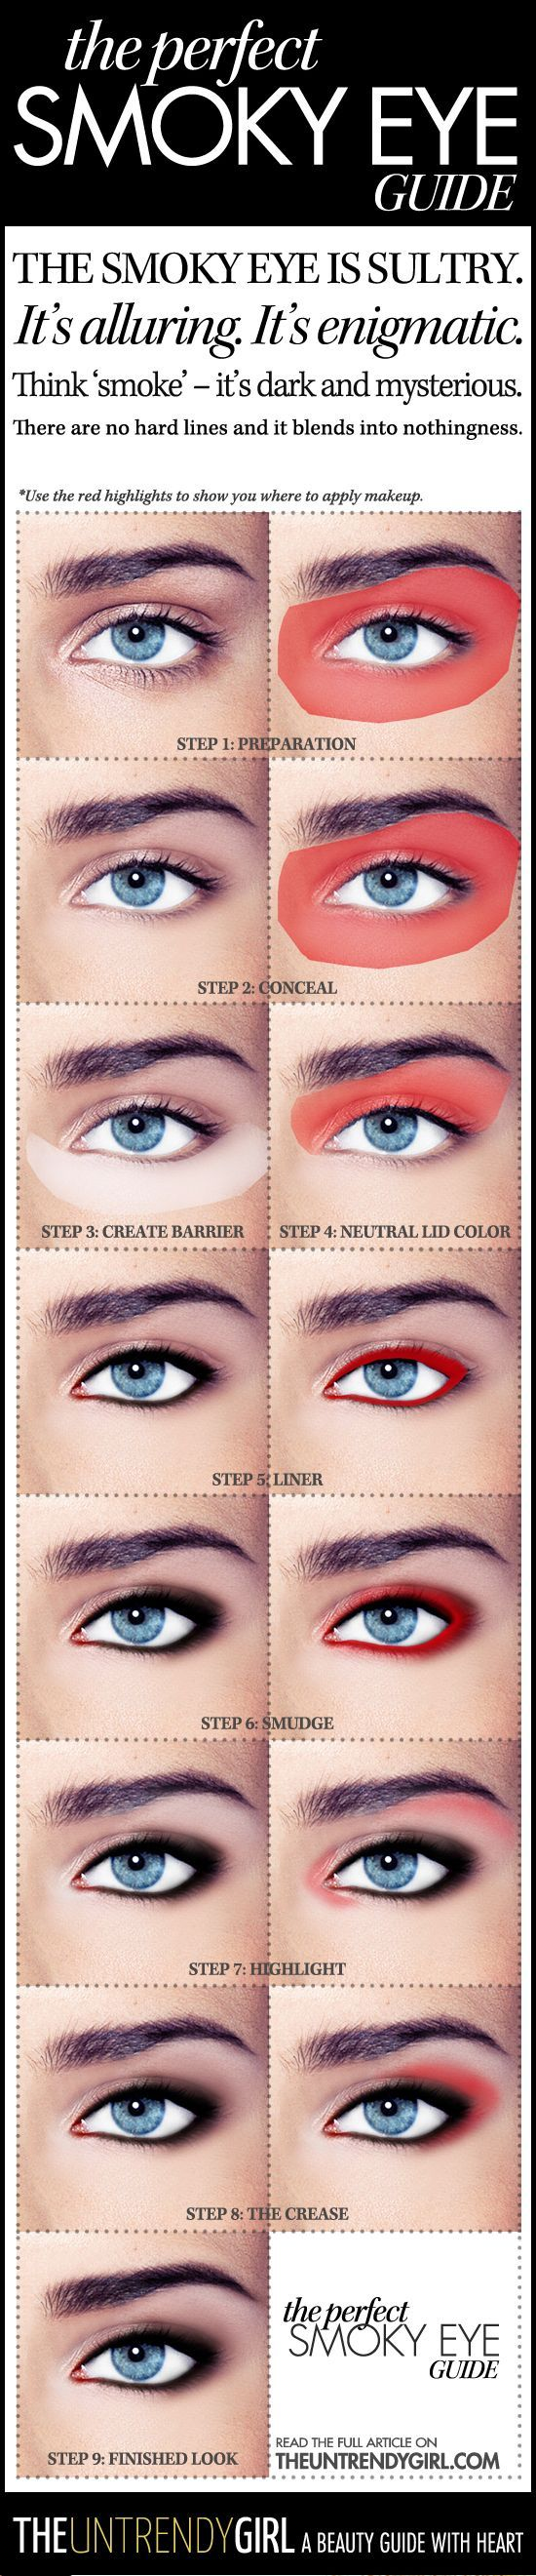 The Perfect Smoky Eye Guide...